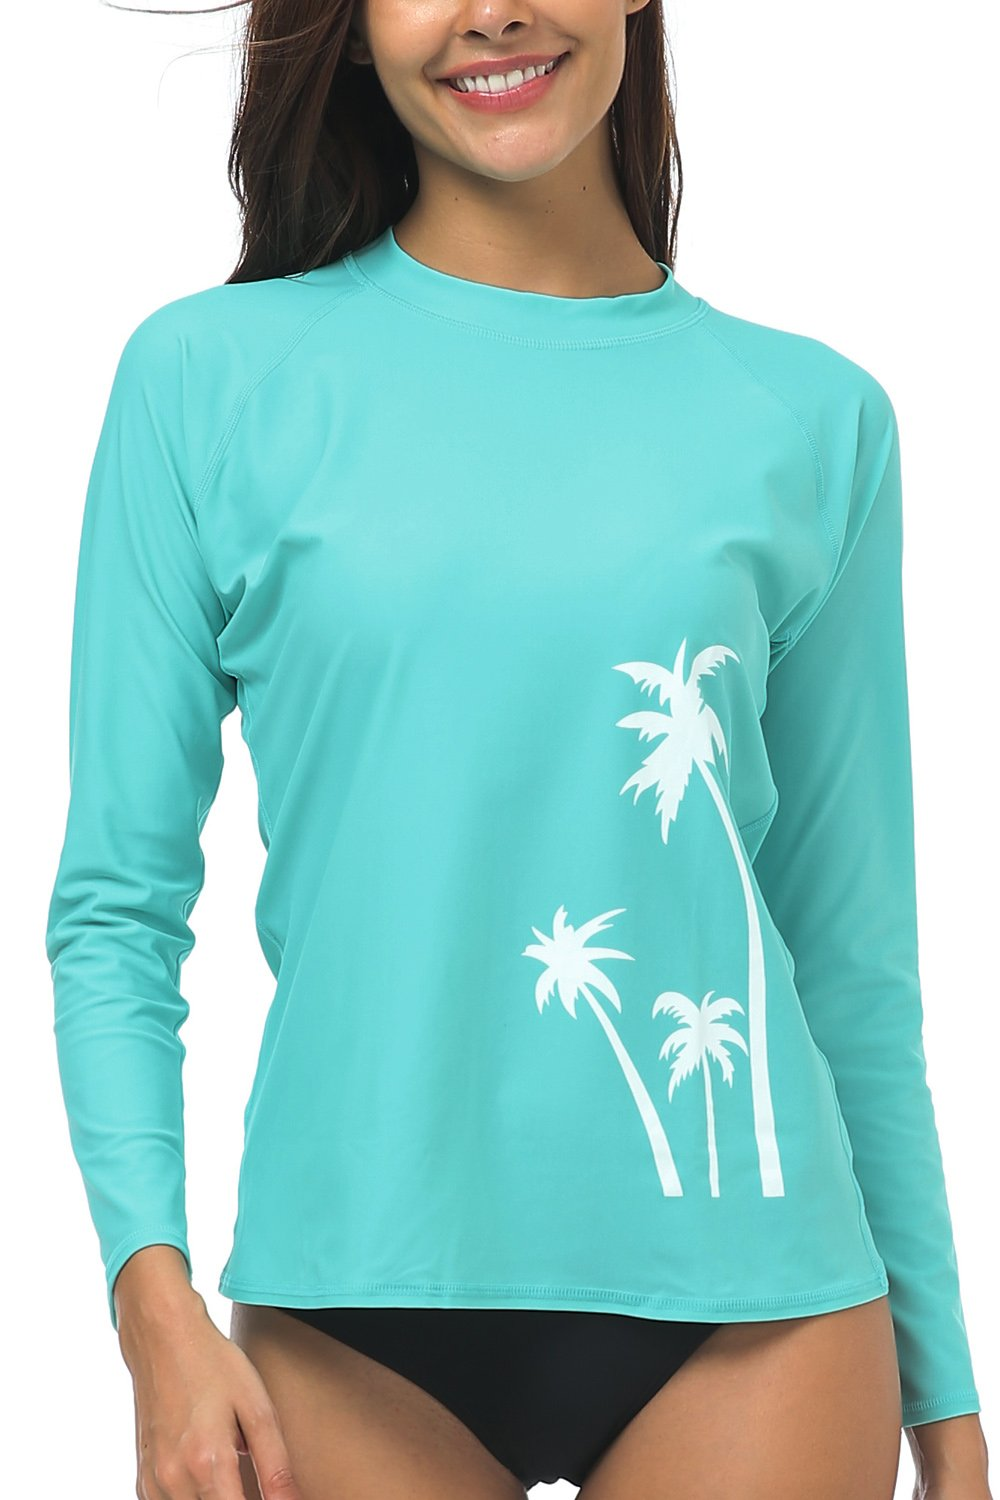 Wetopkim Women's Long Sleeve rushguard Surfing Swimwear Athletic Swim Shirts Swim Tops